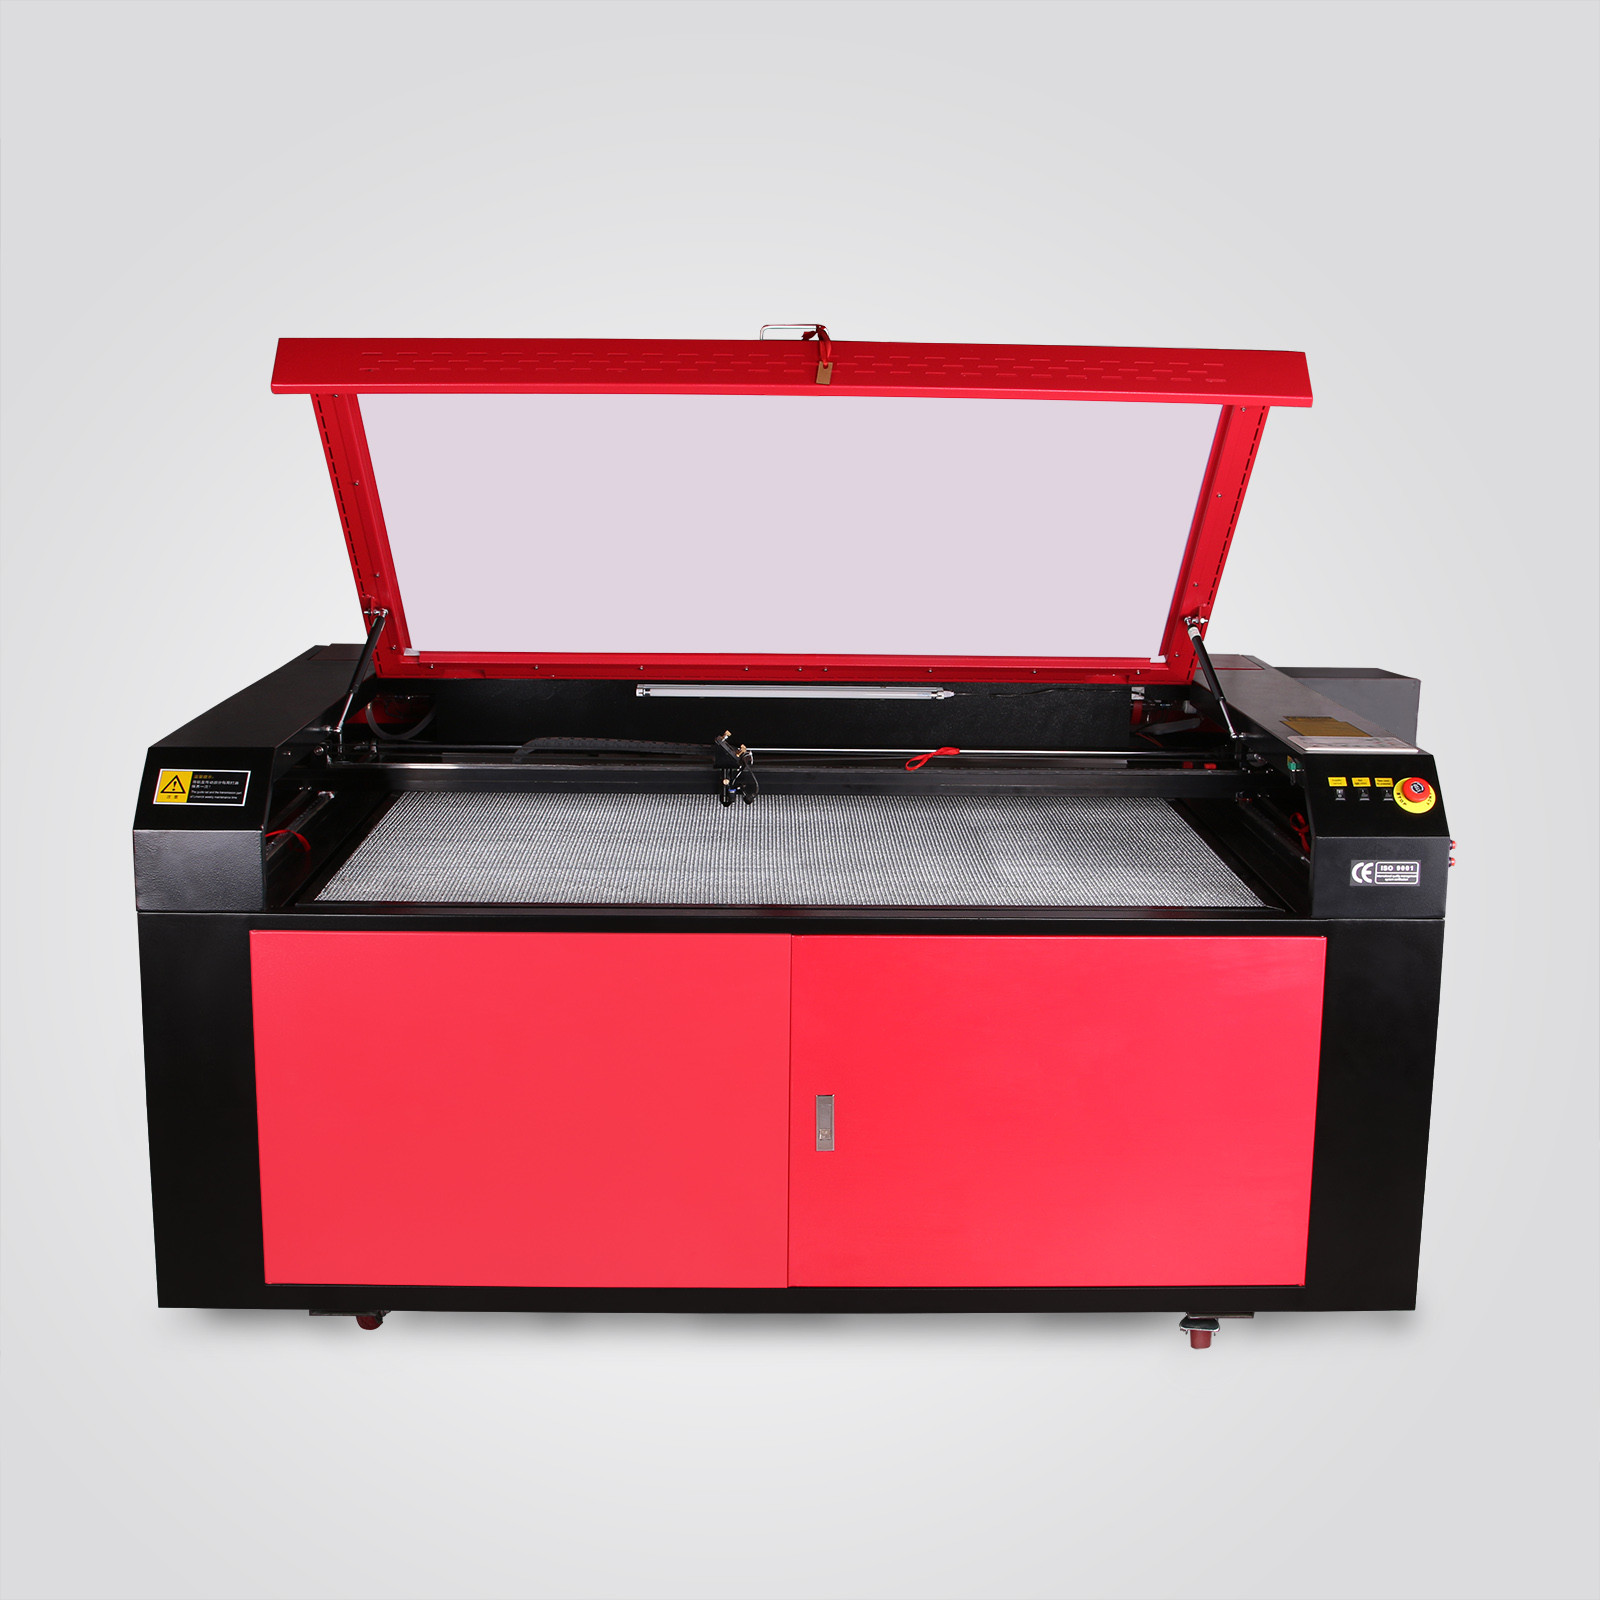 CO2-Usb-Laser-Engraving-Cutting-Machine-Engraver-Cutter-Air-Assist-Carving thumbnail 67